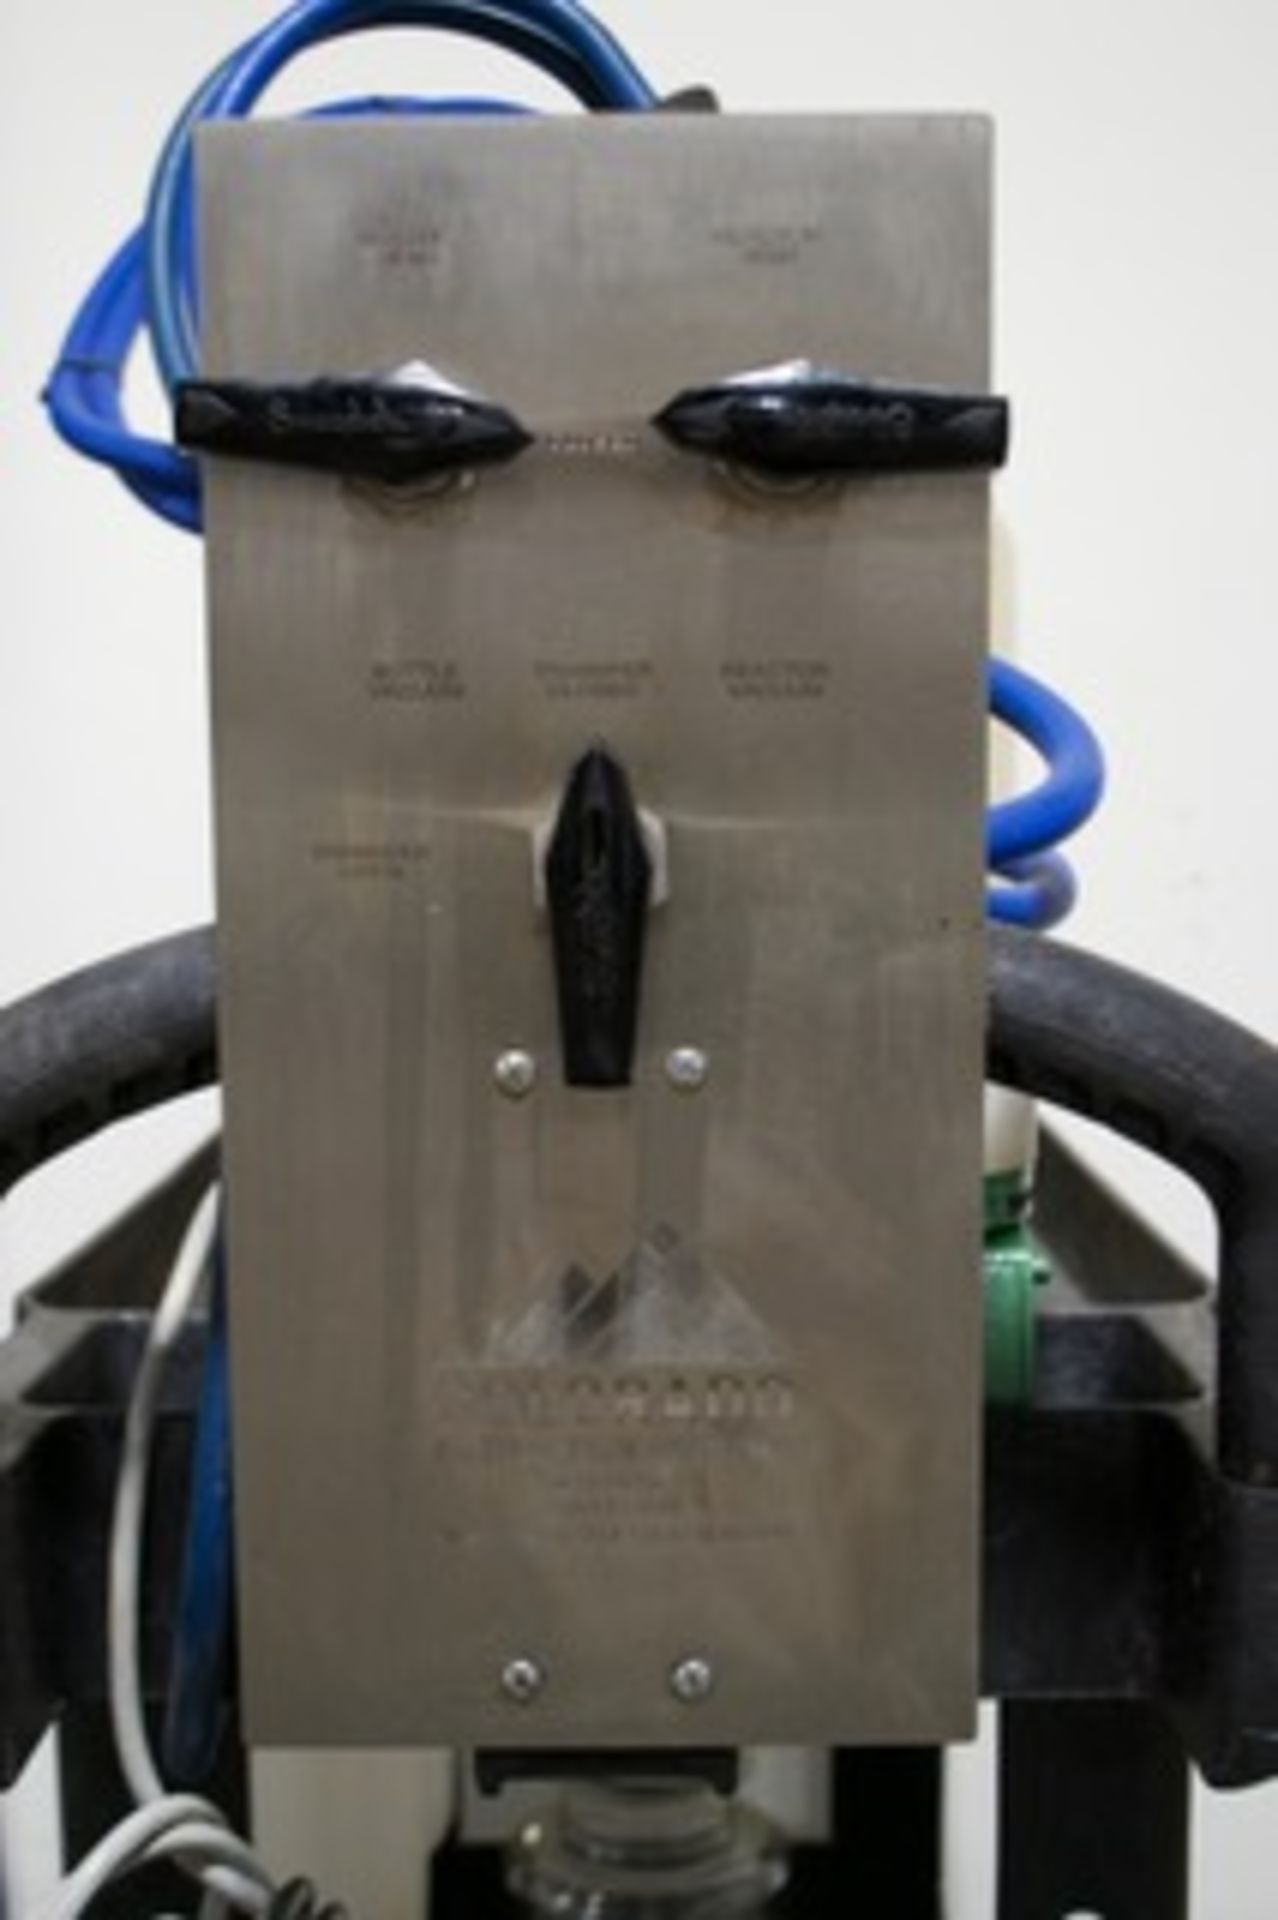 Used-Colorado Extraction Systems SprayVap System w/TripleXtract System. Model SV20. - Image 16 of 27